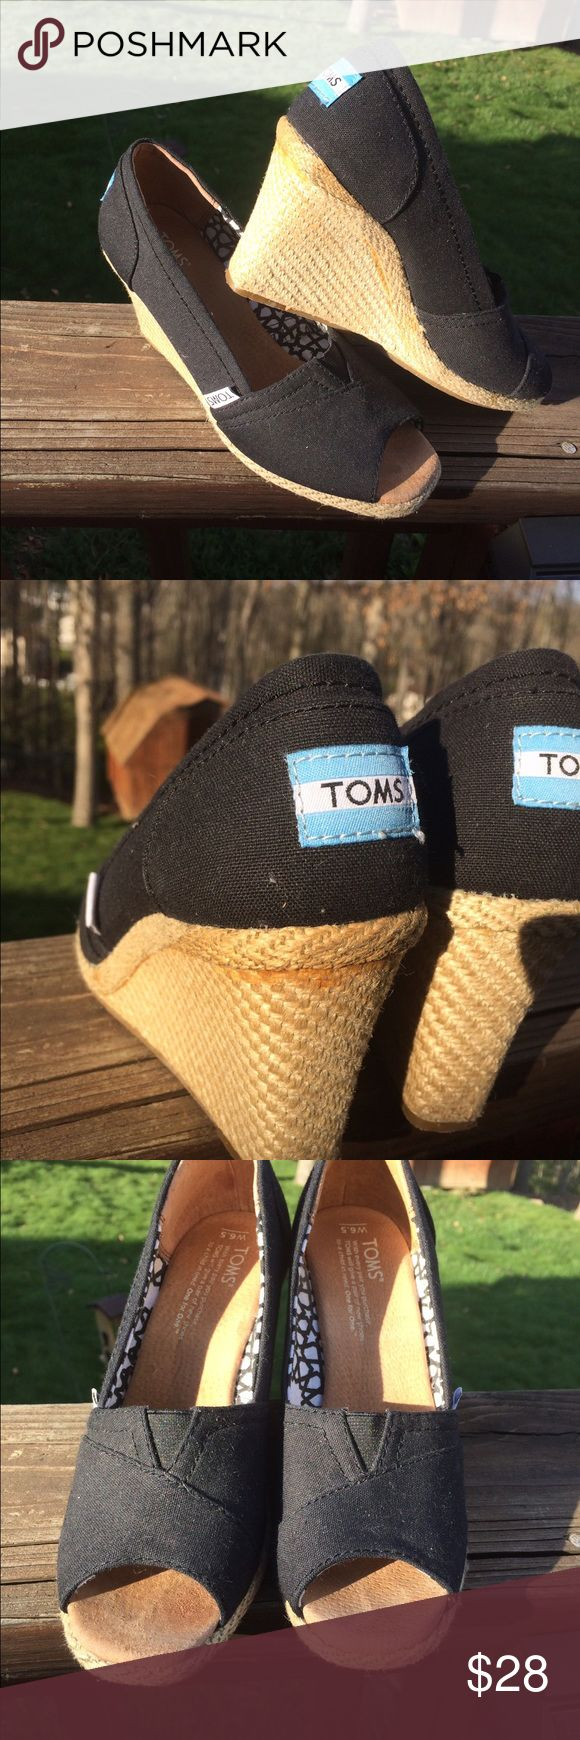 Toms black wedges size 6.5 Worn 3-4 times-have been in storage for over 1 year. Black wedges with jute trim. Toe mark is very faint. Some glue ? Visible just under trim on heel of left shoe-see picture. Closet clean out! Very gently worn. TOMS Shoes Wedges